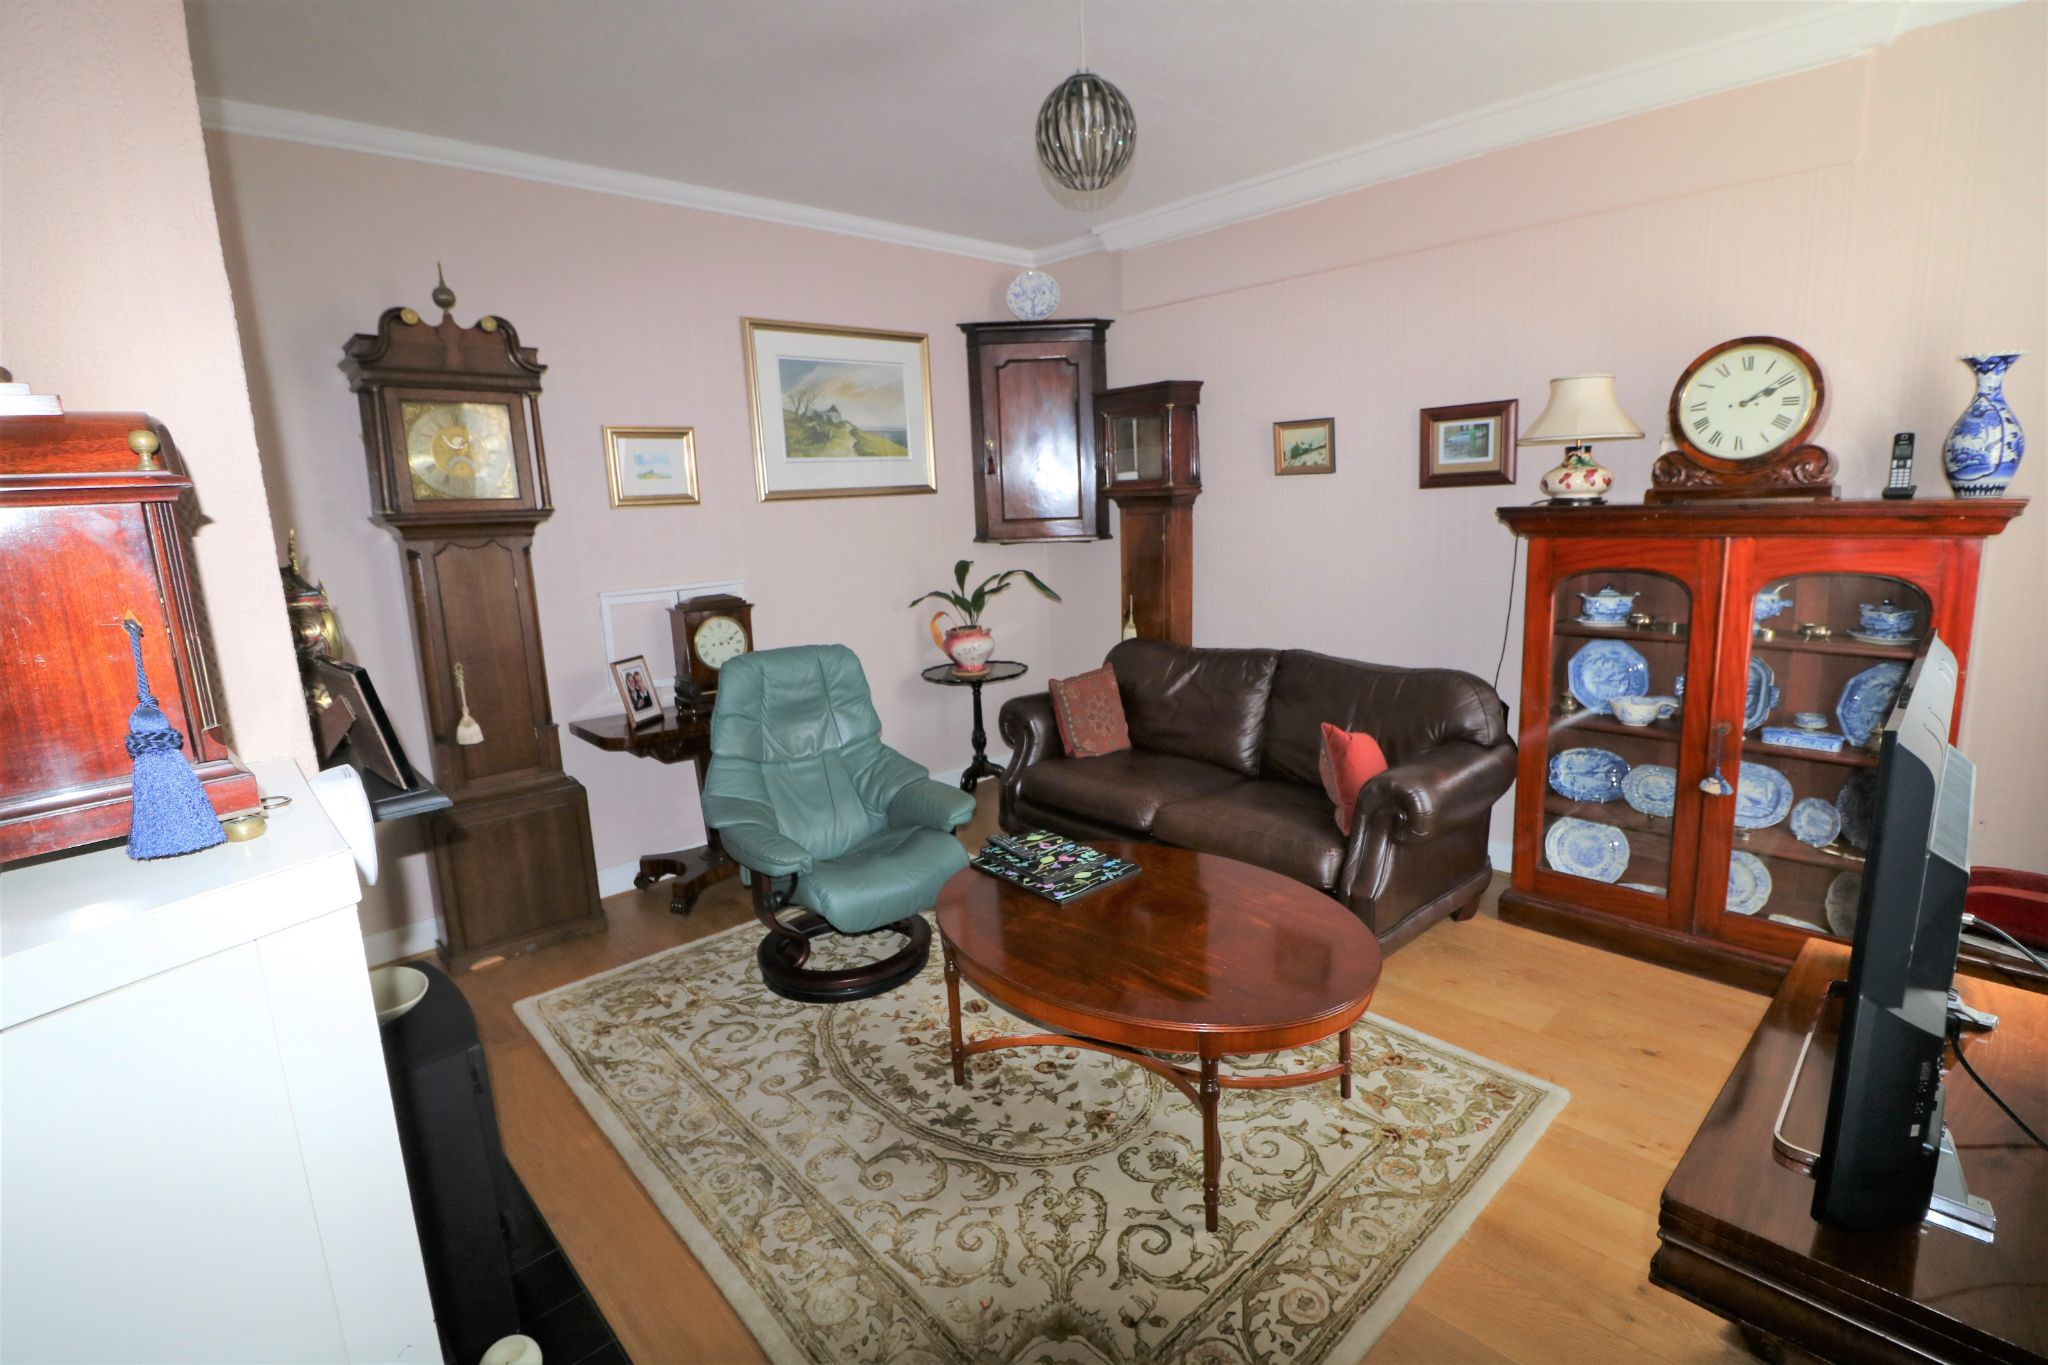 6 Bedroom Semi-detached House For Sale - Photograph 10